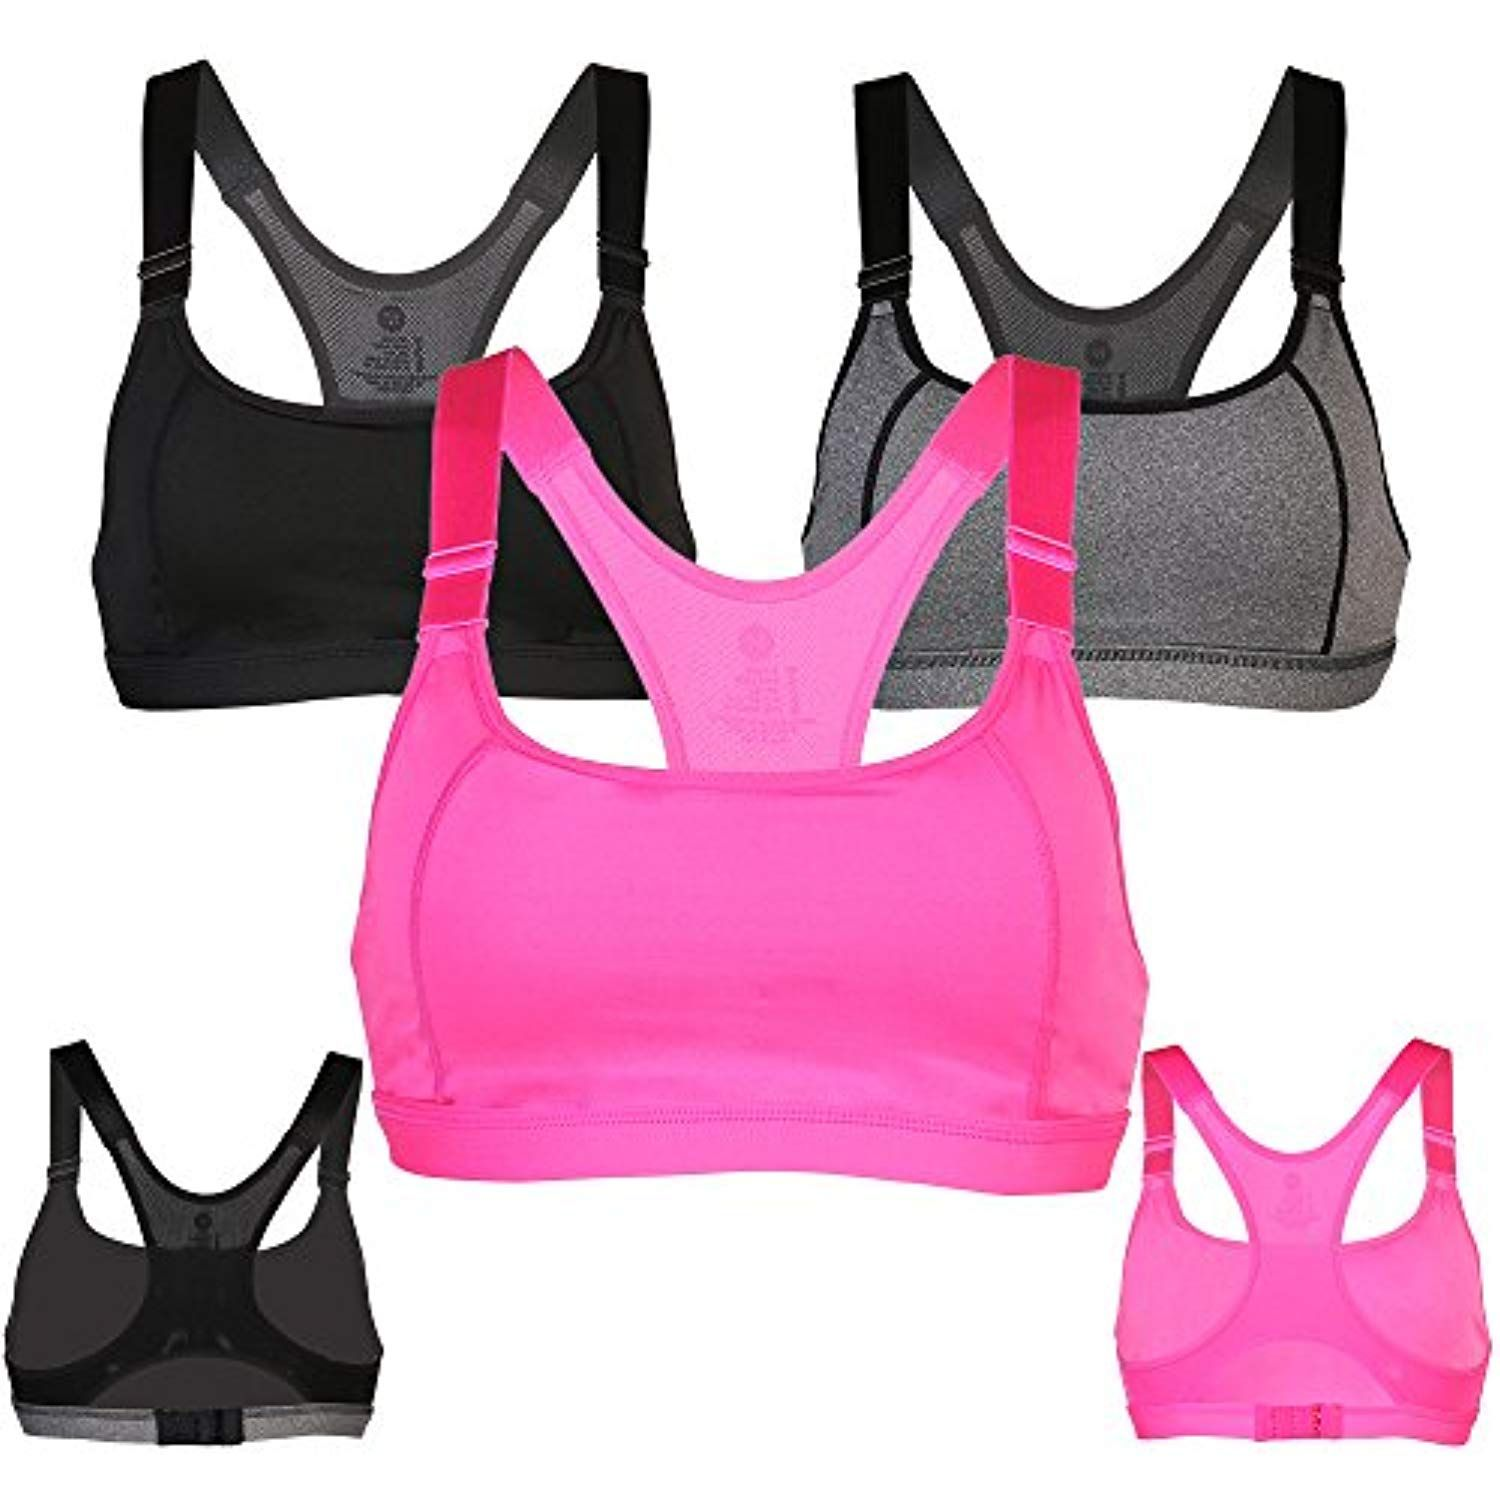 86847b04f77d9 BRAUFACTUM Women s Wirefree Lightly Lined Racerback High Impact Full Figure Support  Sports Bra